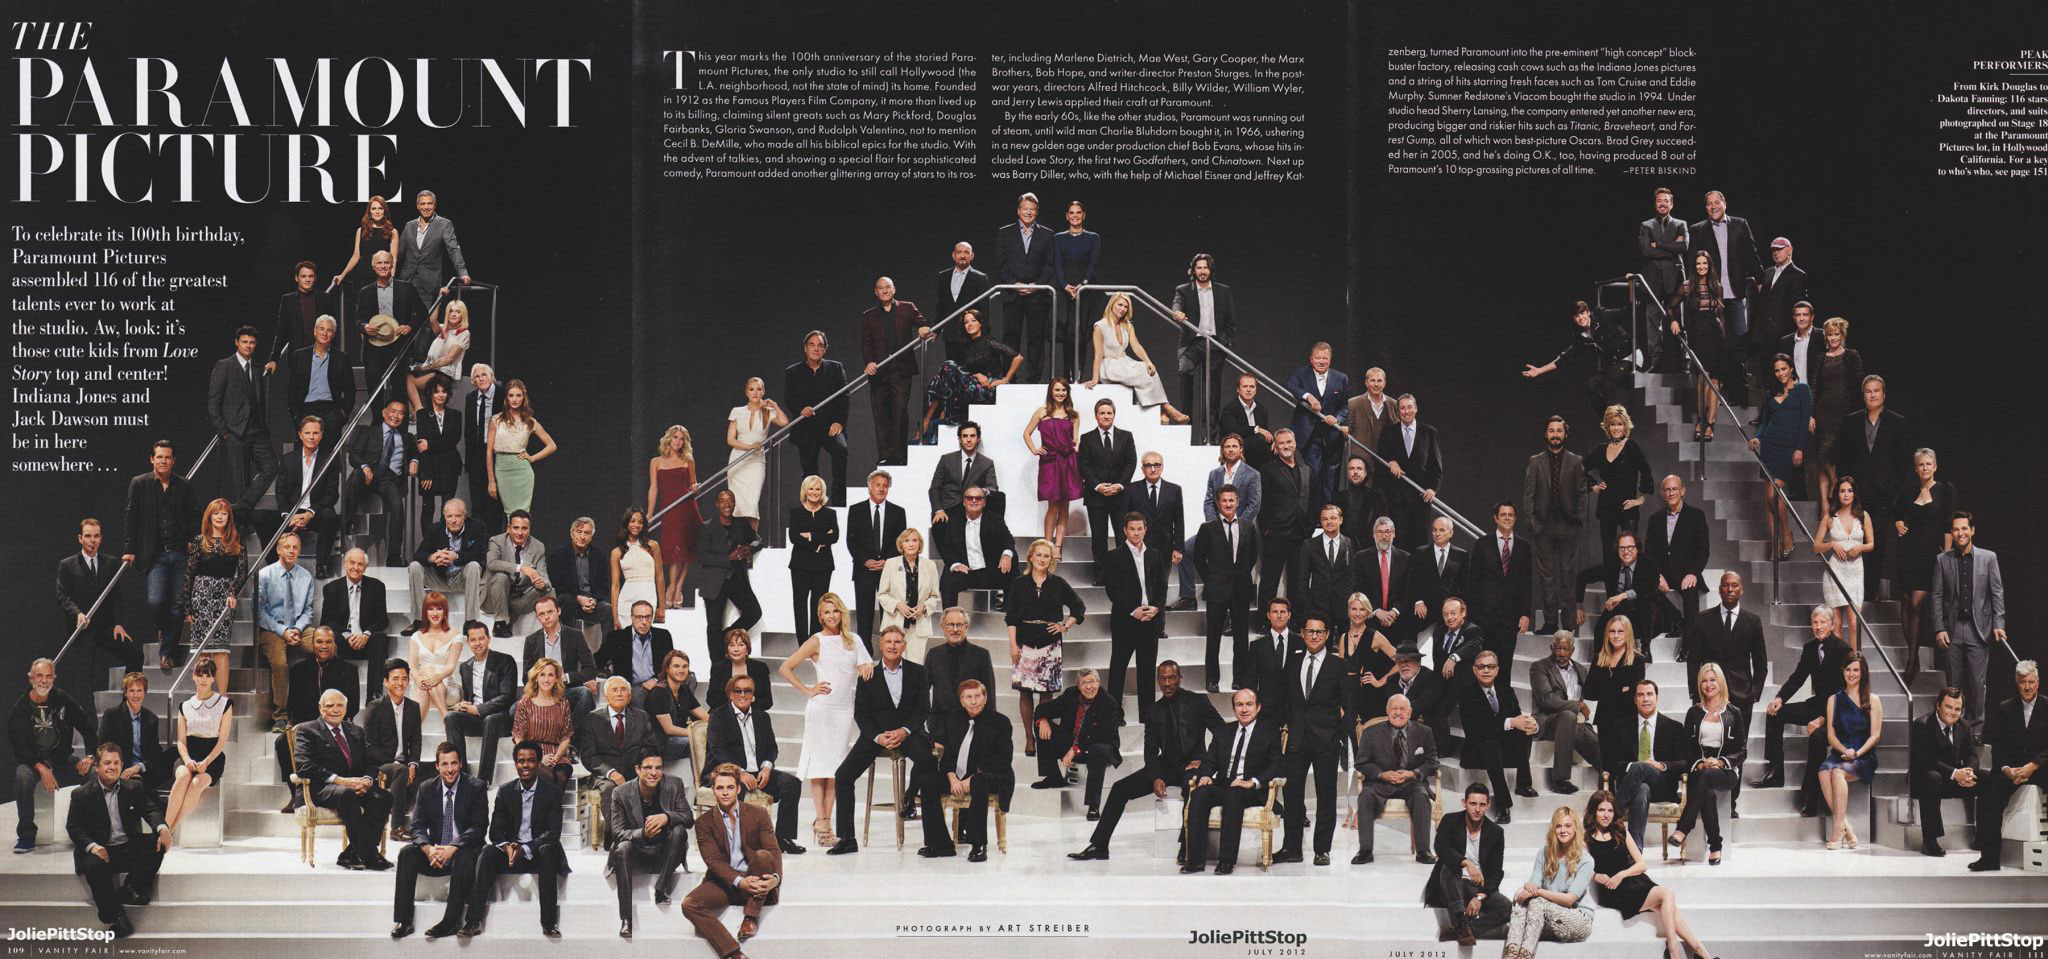 Paramount Pictures' 100th anniversary celebrity actors actresses photo on steps